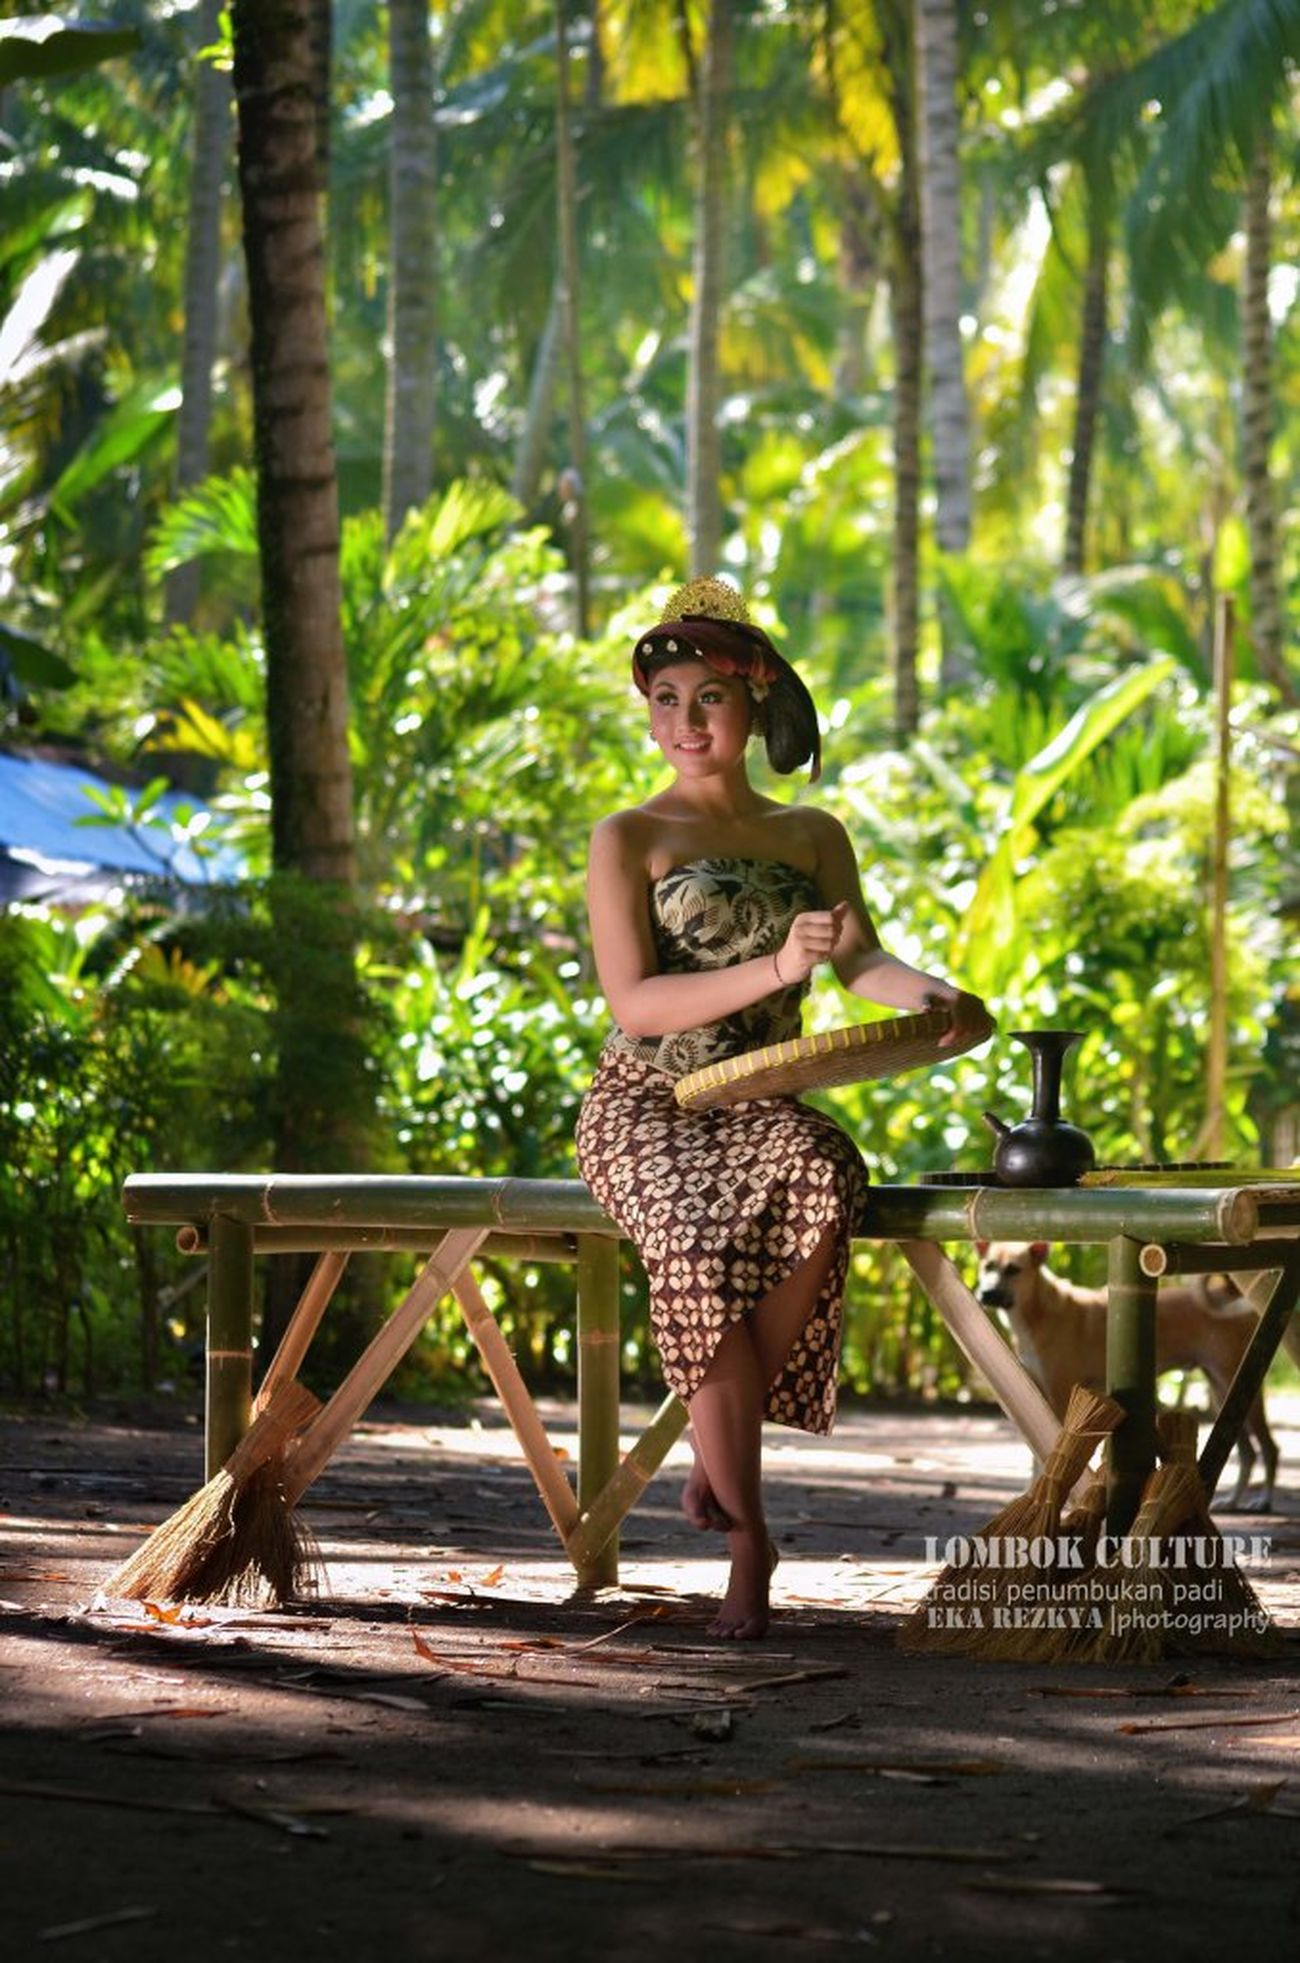 lombok culture, photography,